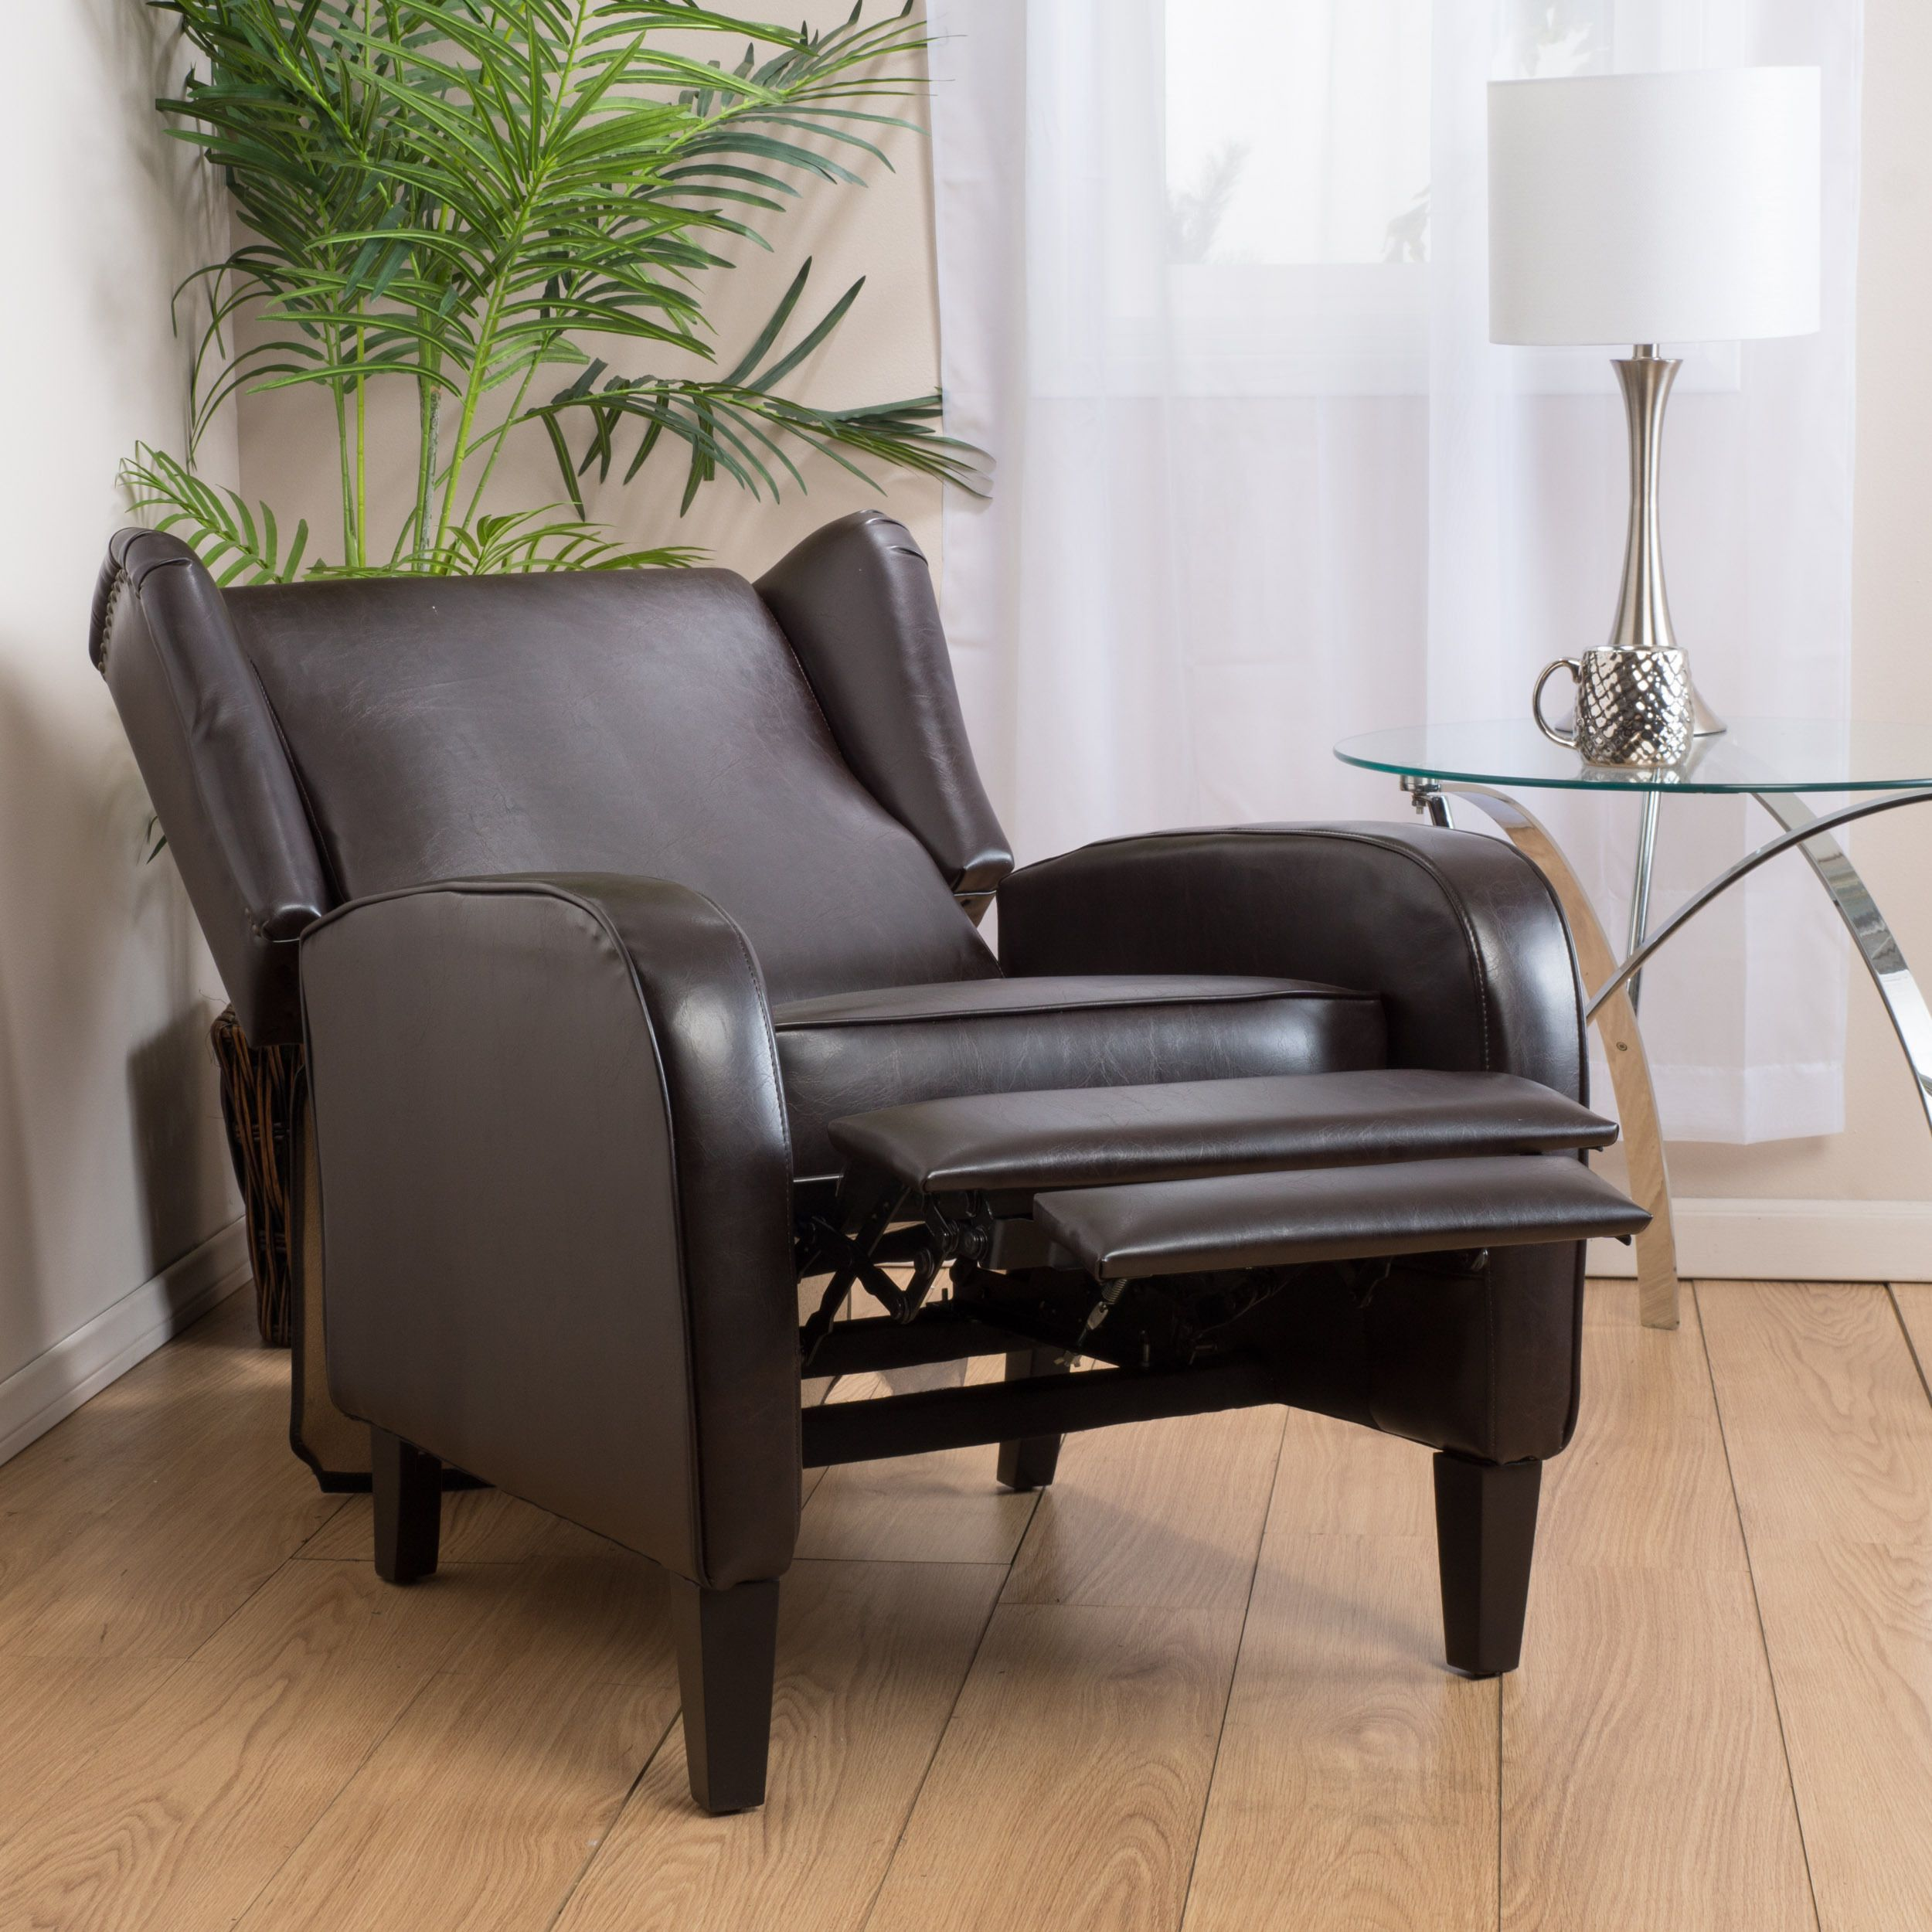 Constructed In Bonded Leather, This Comfortable Reclining Chair Is Great  For Small Spaces And Functions As A Great Place ...